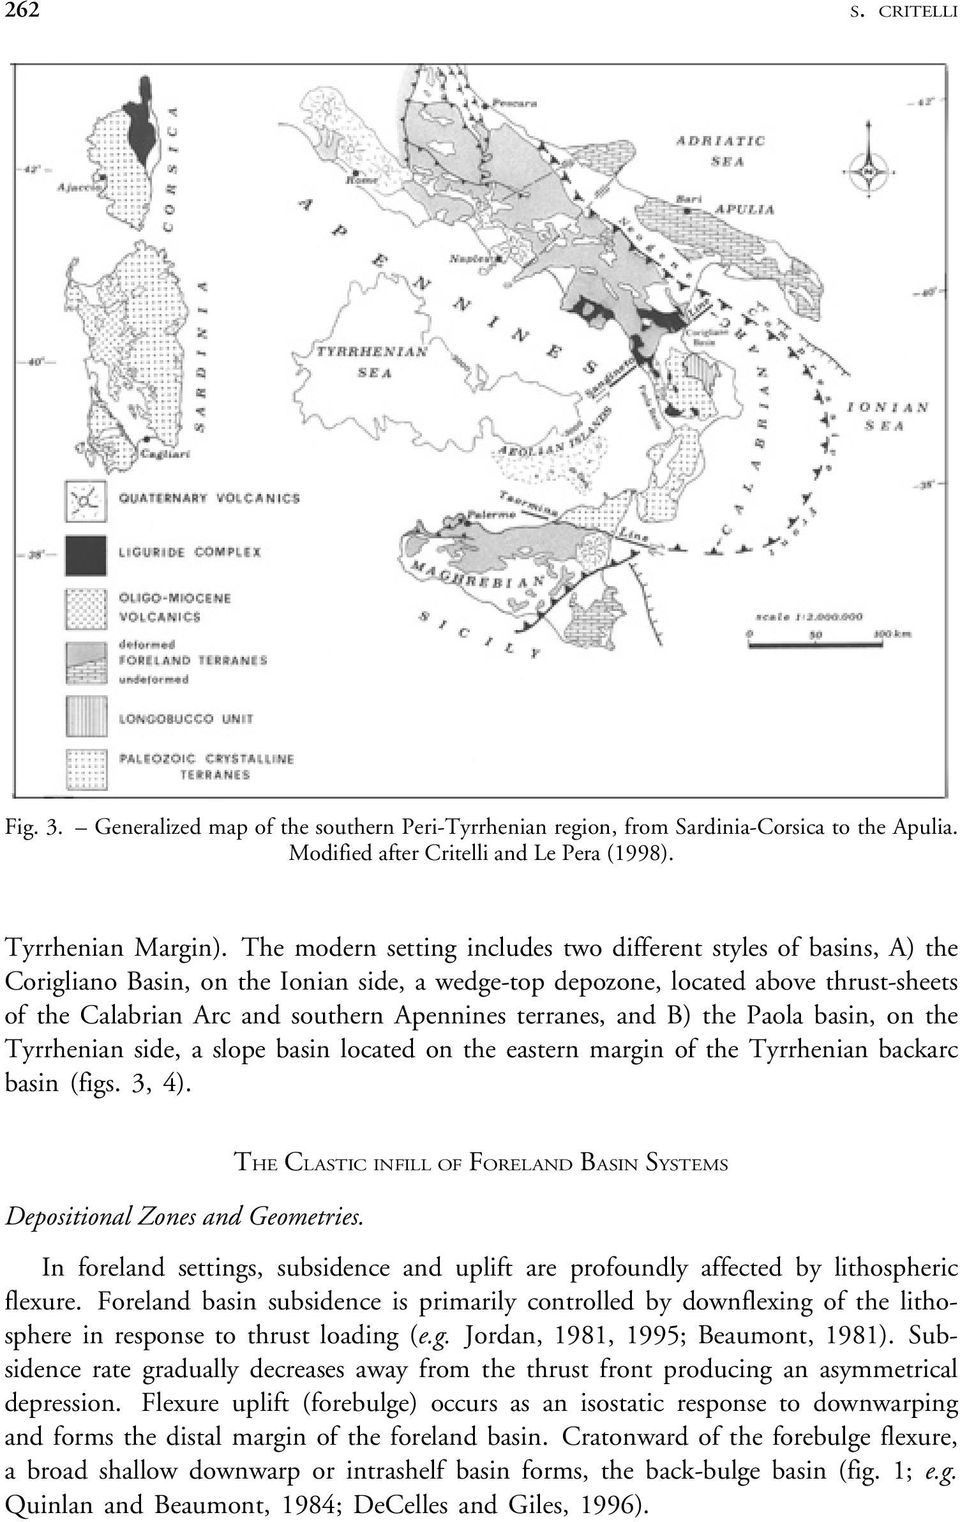 terranes, and B) the Paola basin, on the Tyrrhenian side, a slope basin located on the eastern margin of the Tyrrhenian backarc basin (figs. 3, 4). Depositional Zones and Geometries.